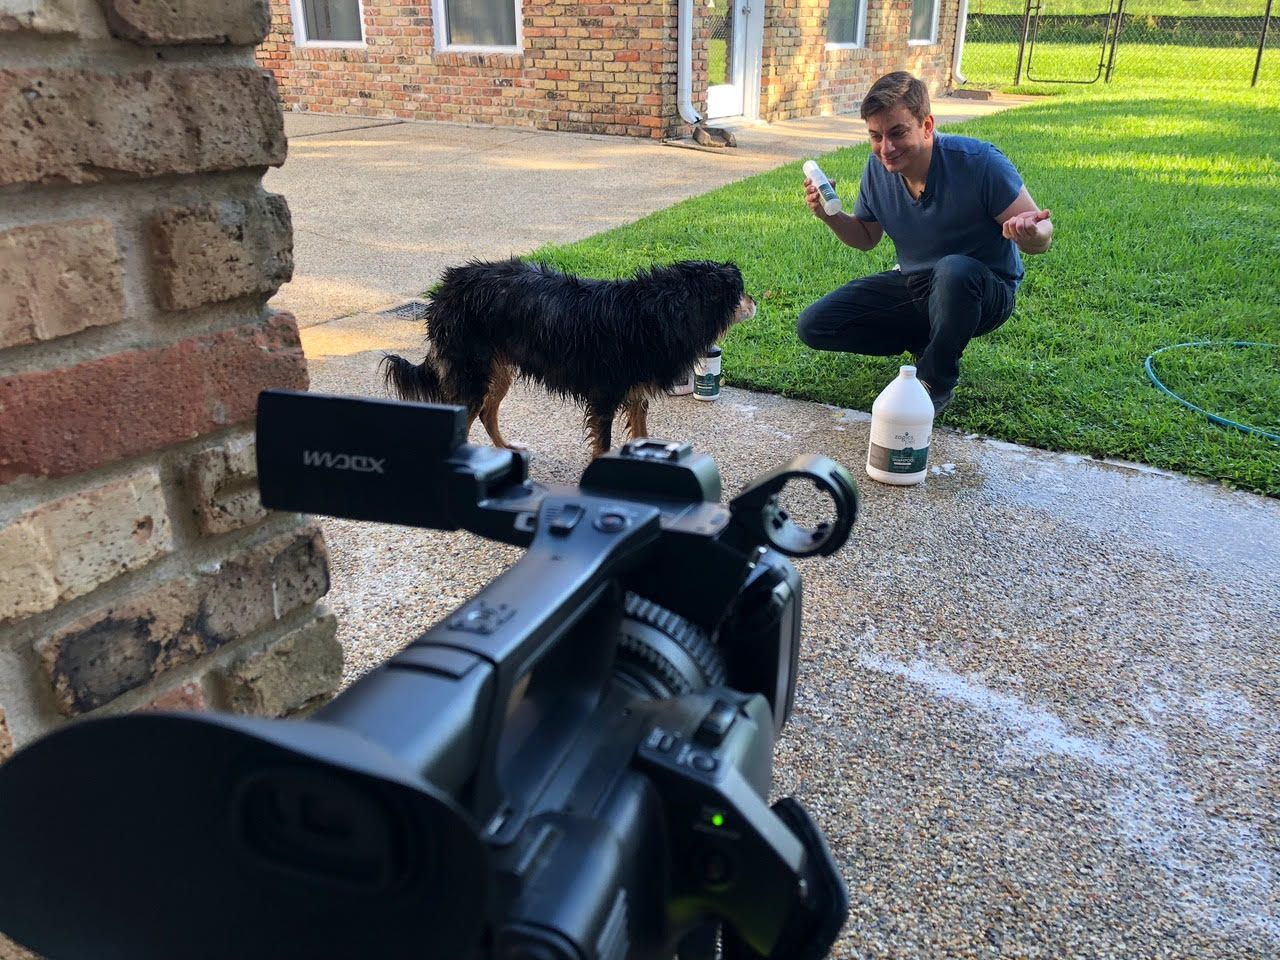 Behind The Scenes With Zak George And Zogics Pet On The